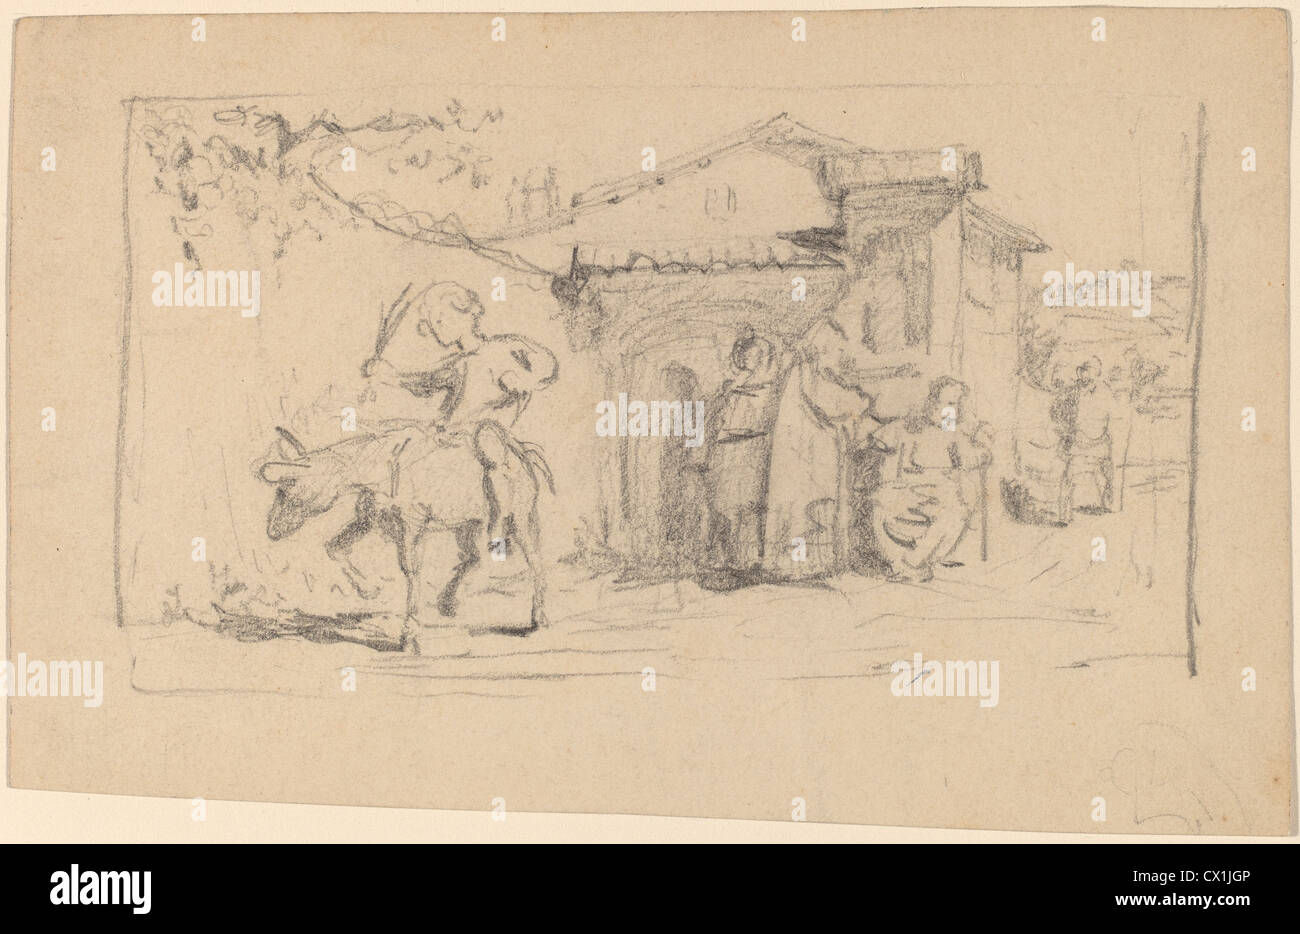 Elihu Vedder, Son and Donkey, American, 1836 - 1923, c. 1859, graphite on wove paper - Stock Image